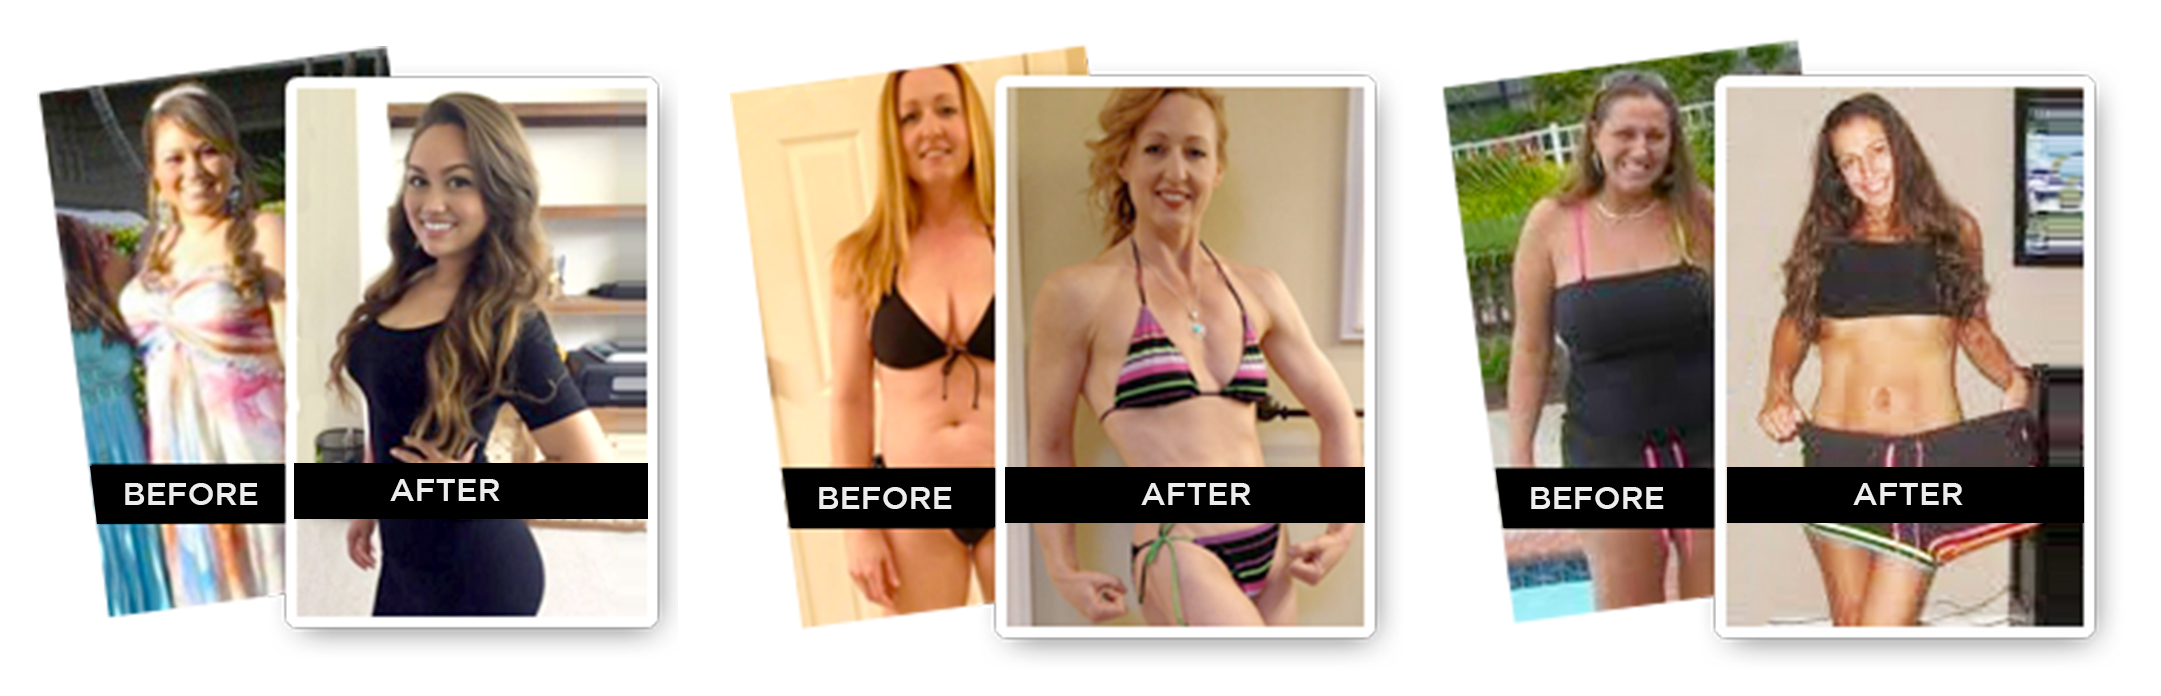 1 Minute Weightloss results